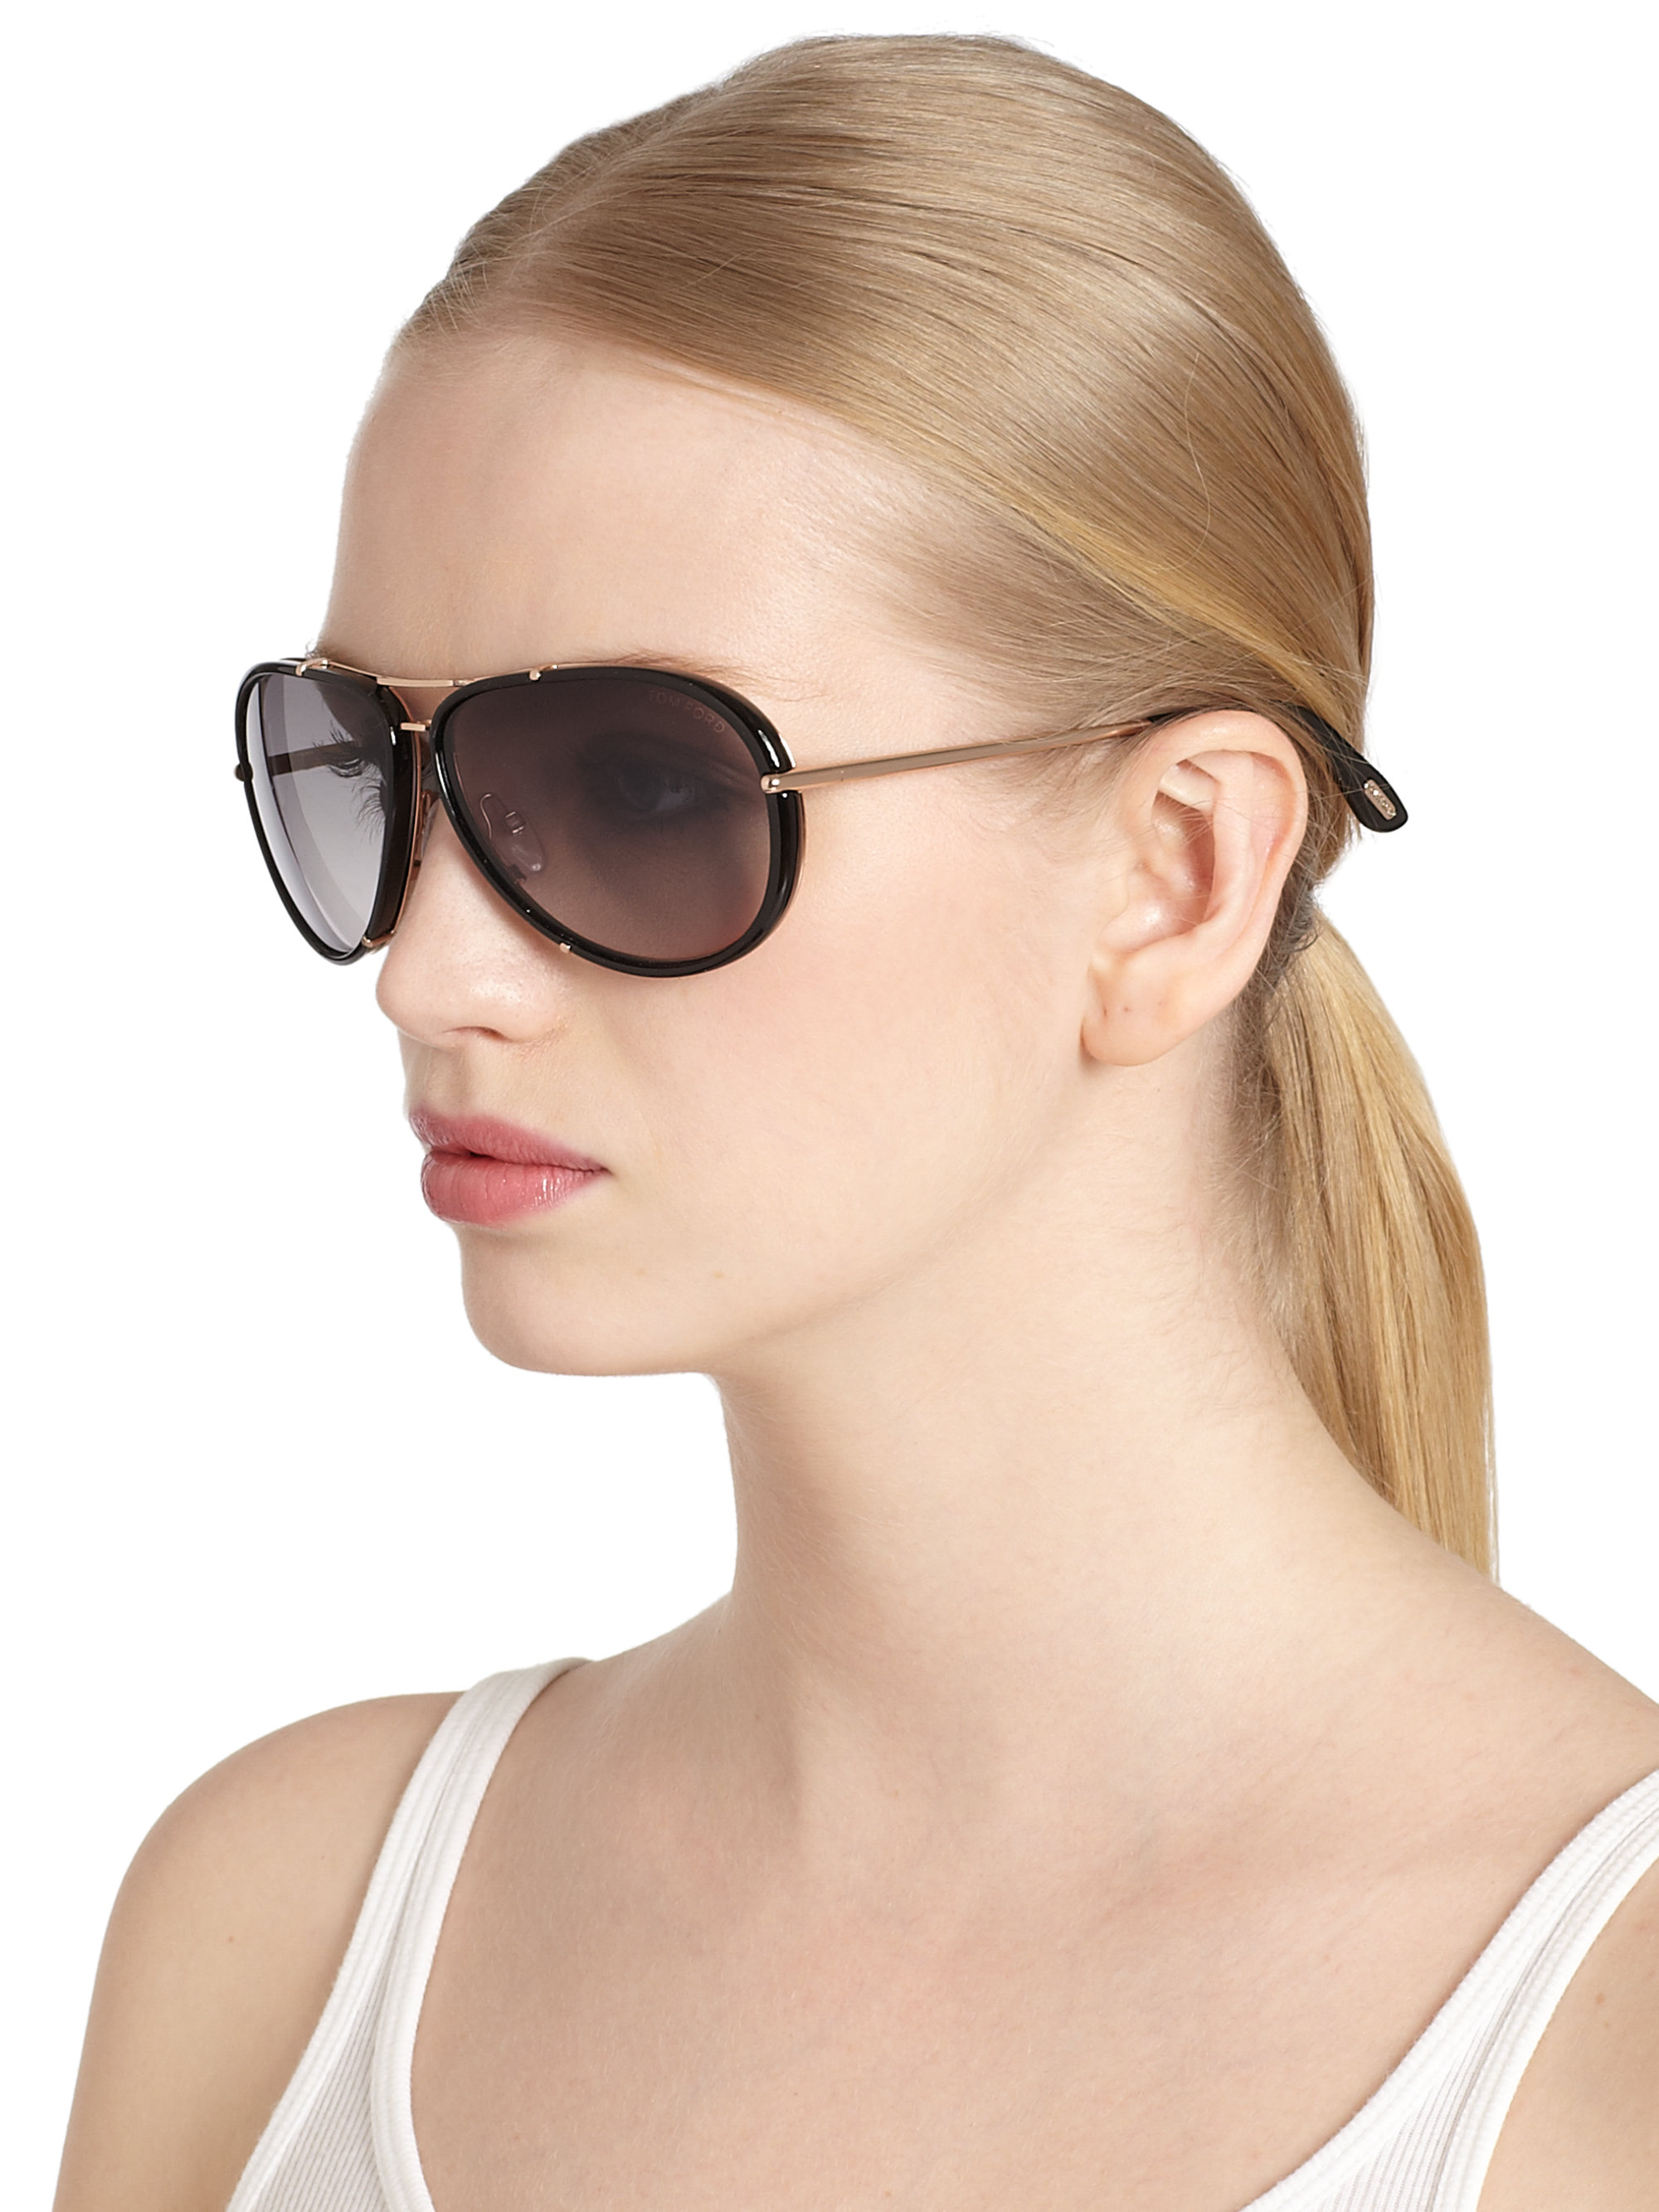 Lyst - Tom Ford Cyrille 63Mm Aviator Sunglasses in Black